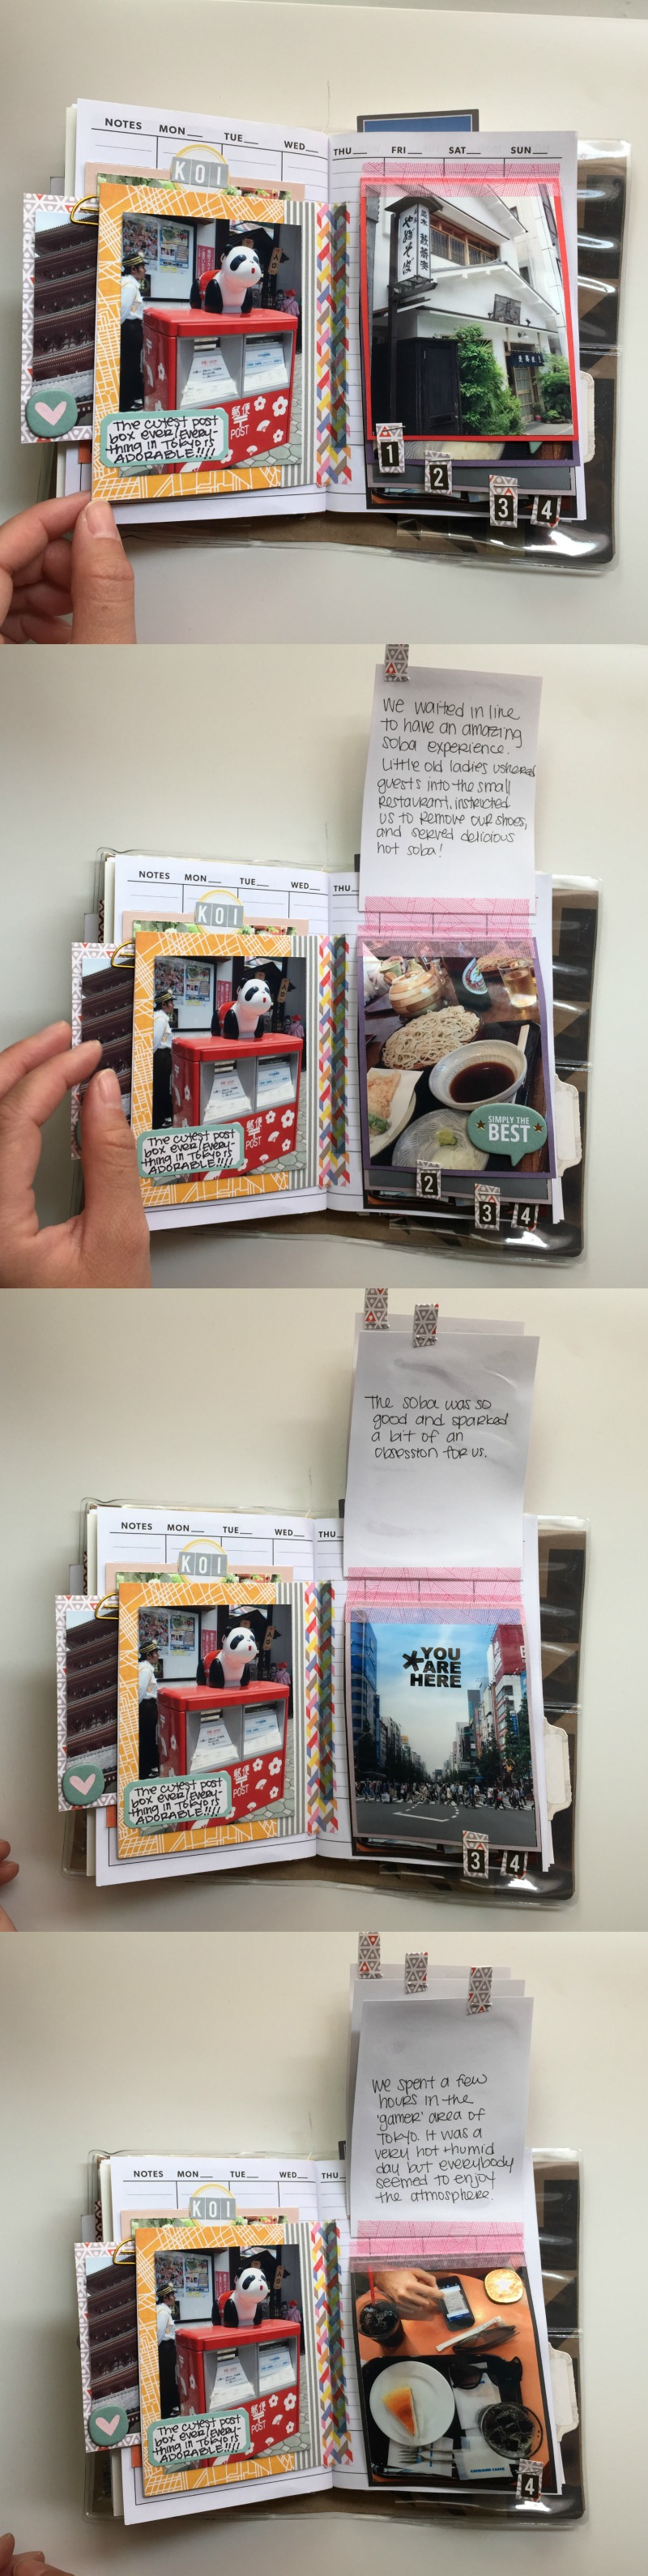 Adding More Stories Into A Vacation Scrapbook - Campfire Chic's Japan Trip 2015